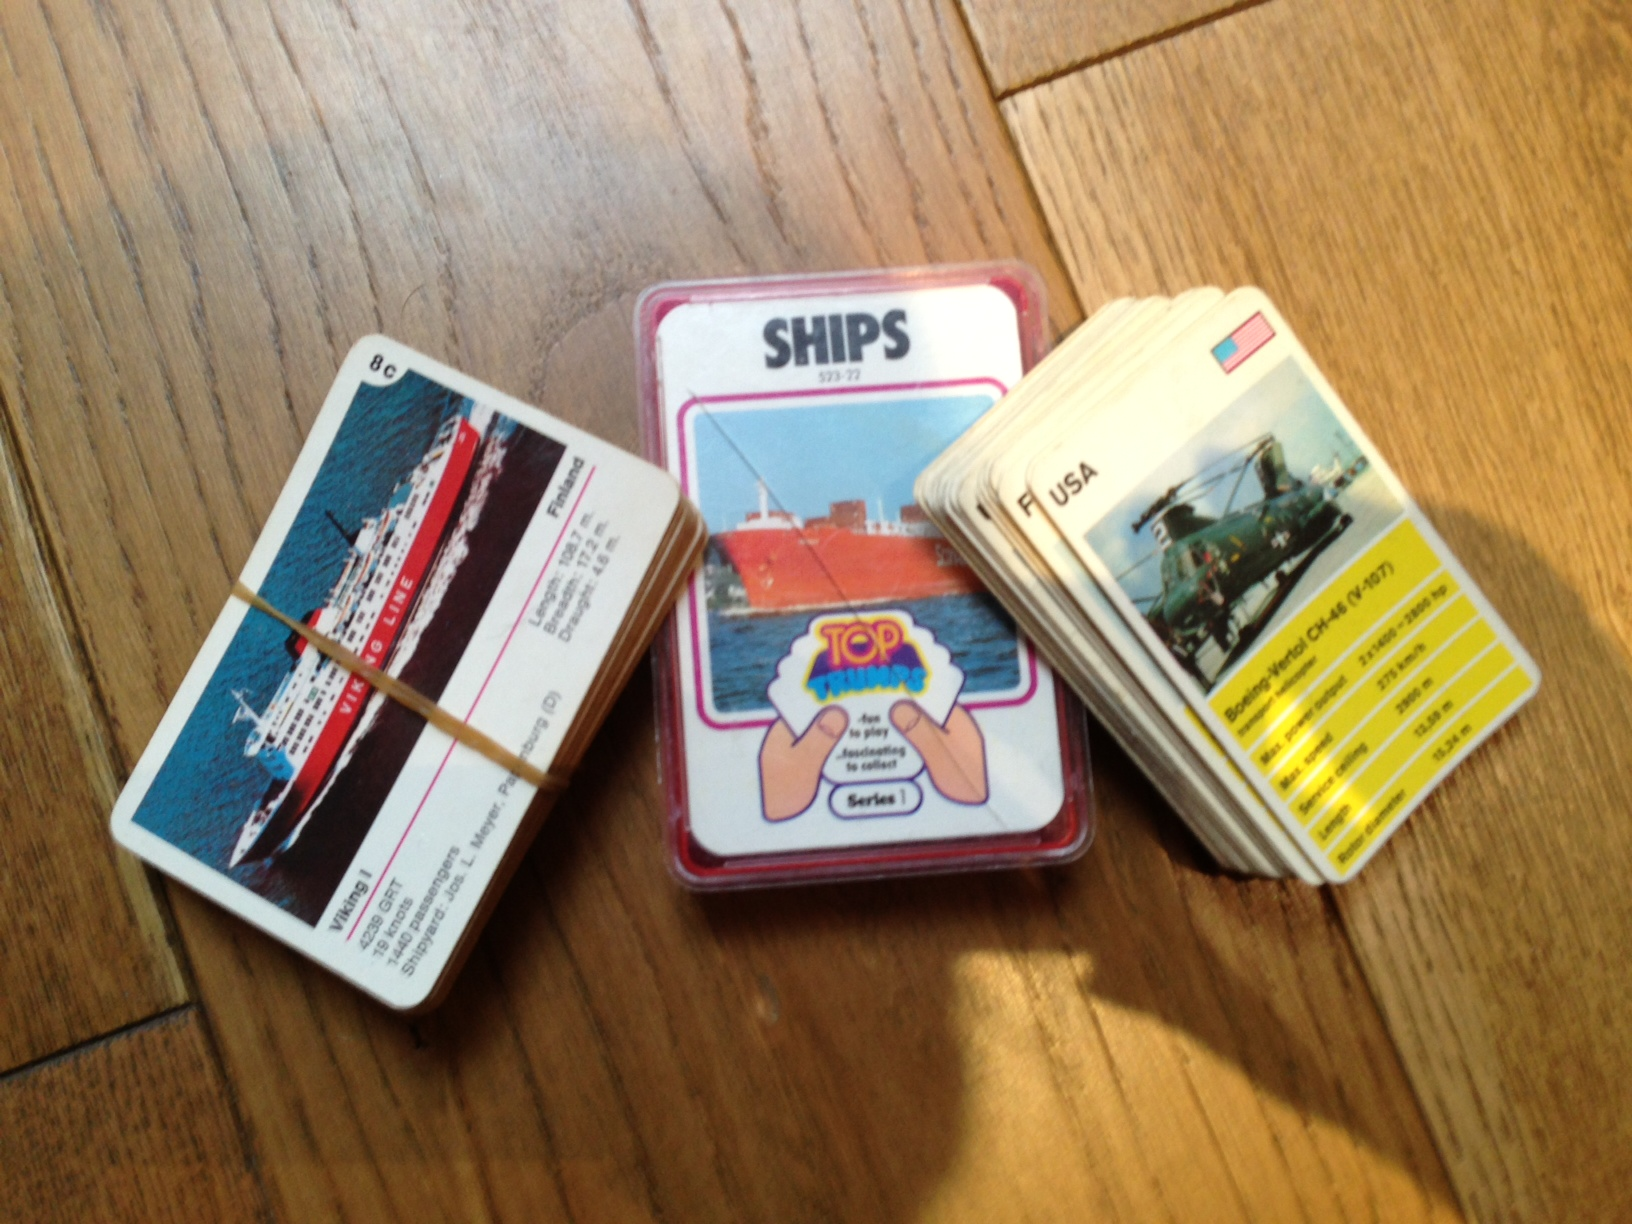 Top Trumps: My old ones